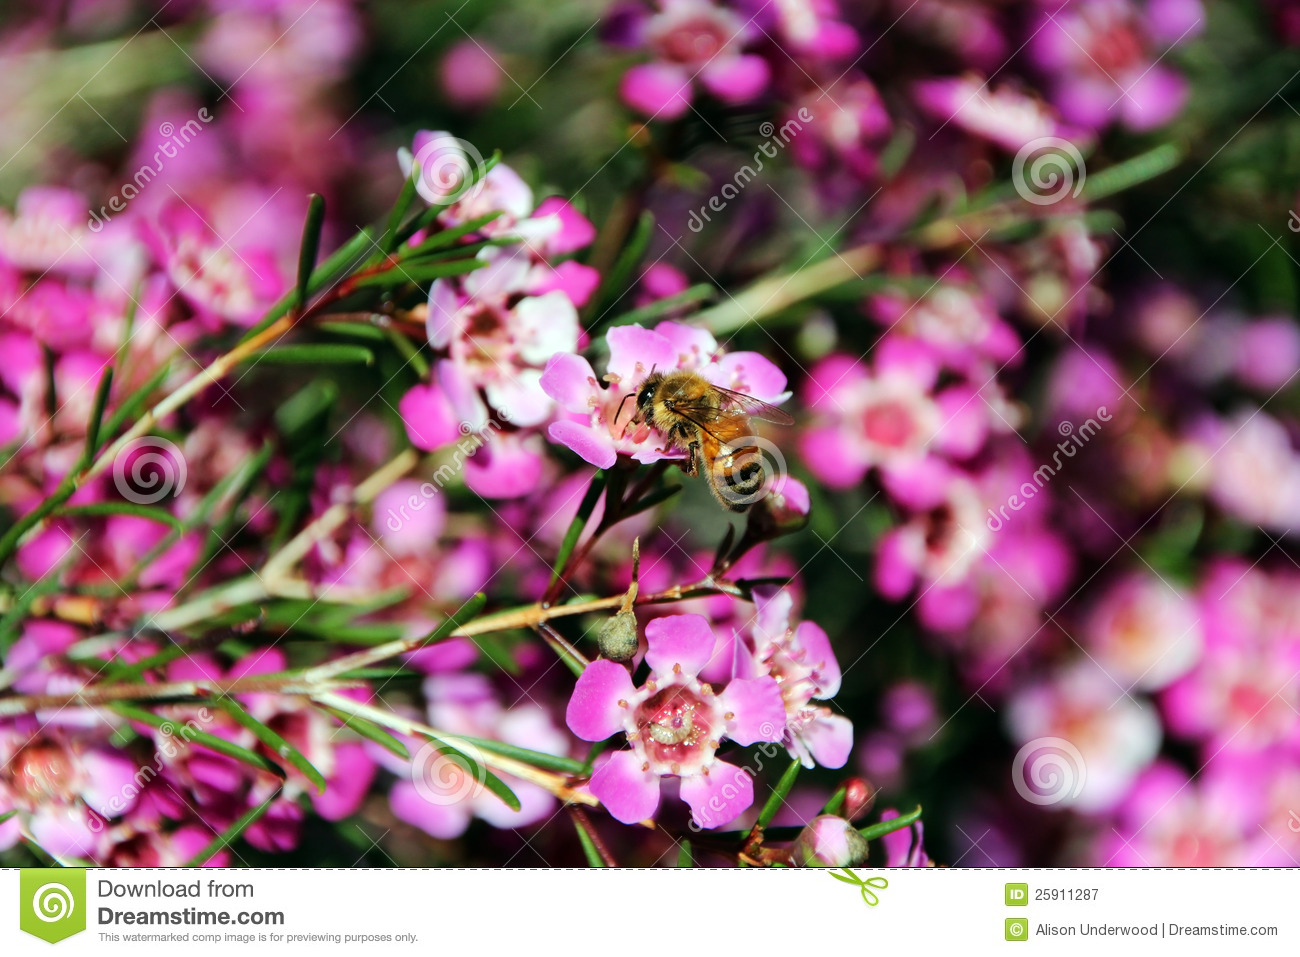 Honey Bee Geraldton Wax Flower Royalty Free Stock graphy Image 259